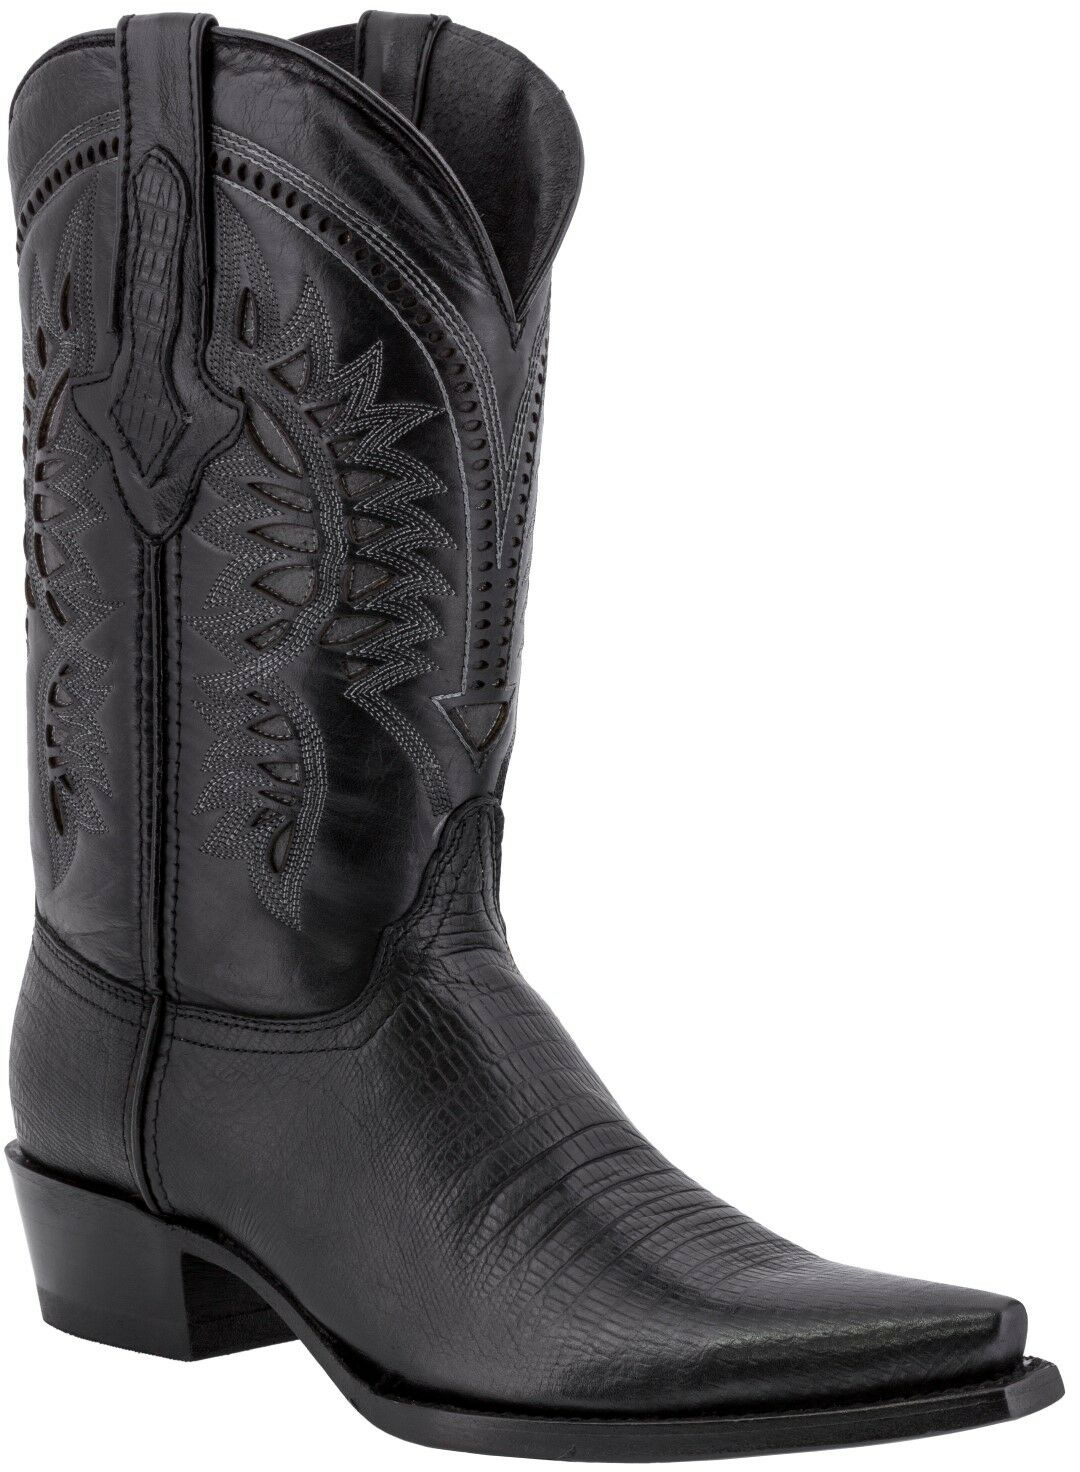 Mens Black Lizard Print Leather Cowboy Boots Casual Dress Pointed Toe